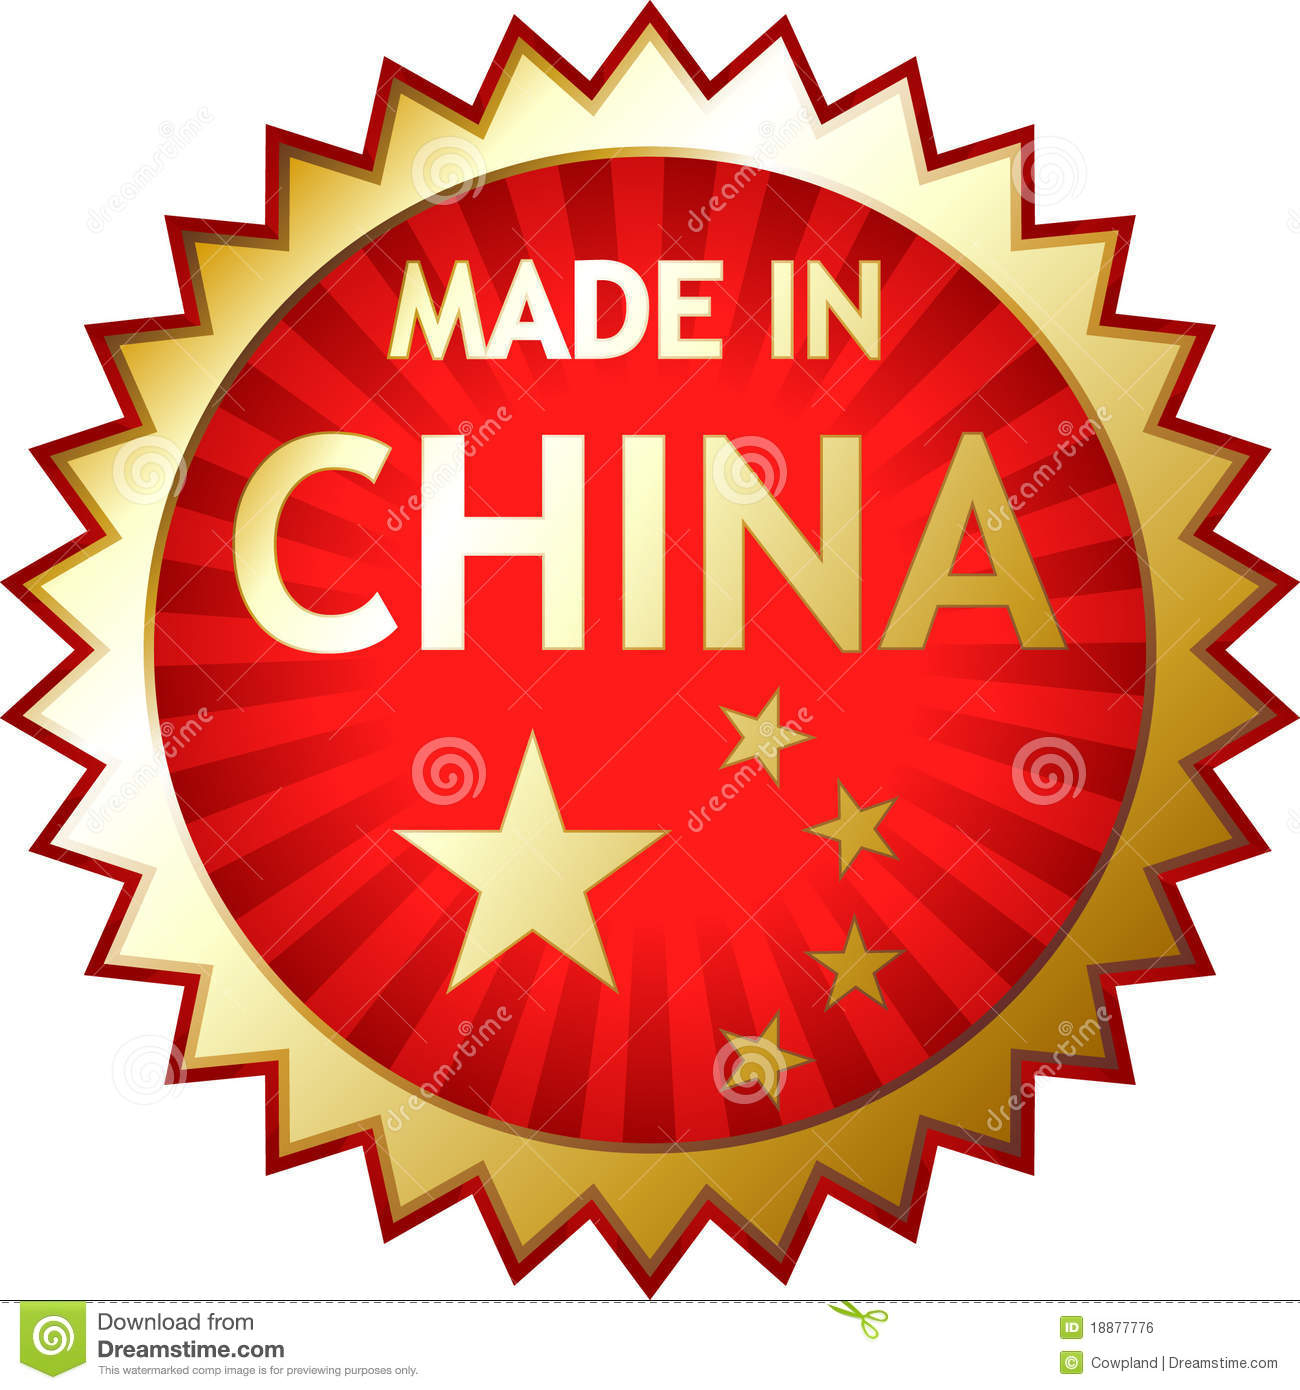 rubber stamp made in china royalty free stock image. Black Bedroom Furniture Sets. Home Design Ideas